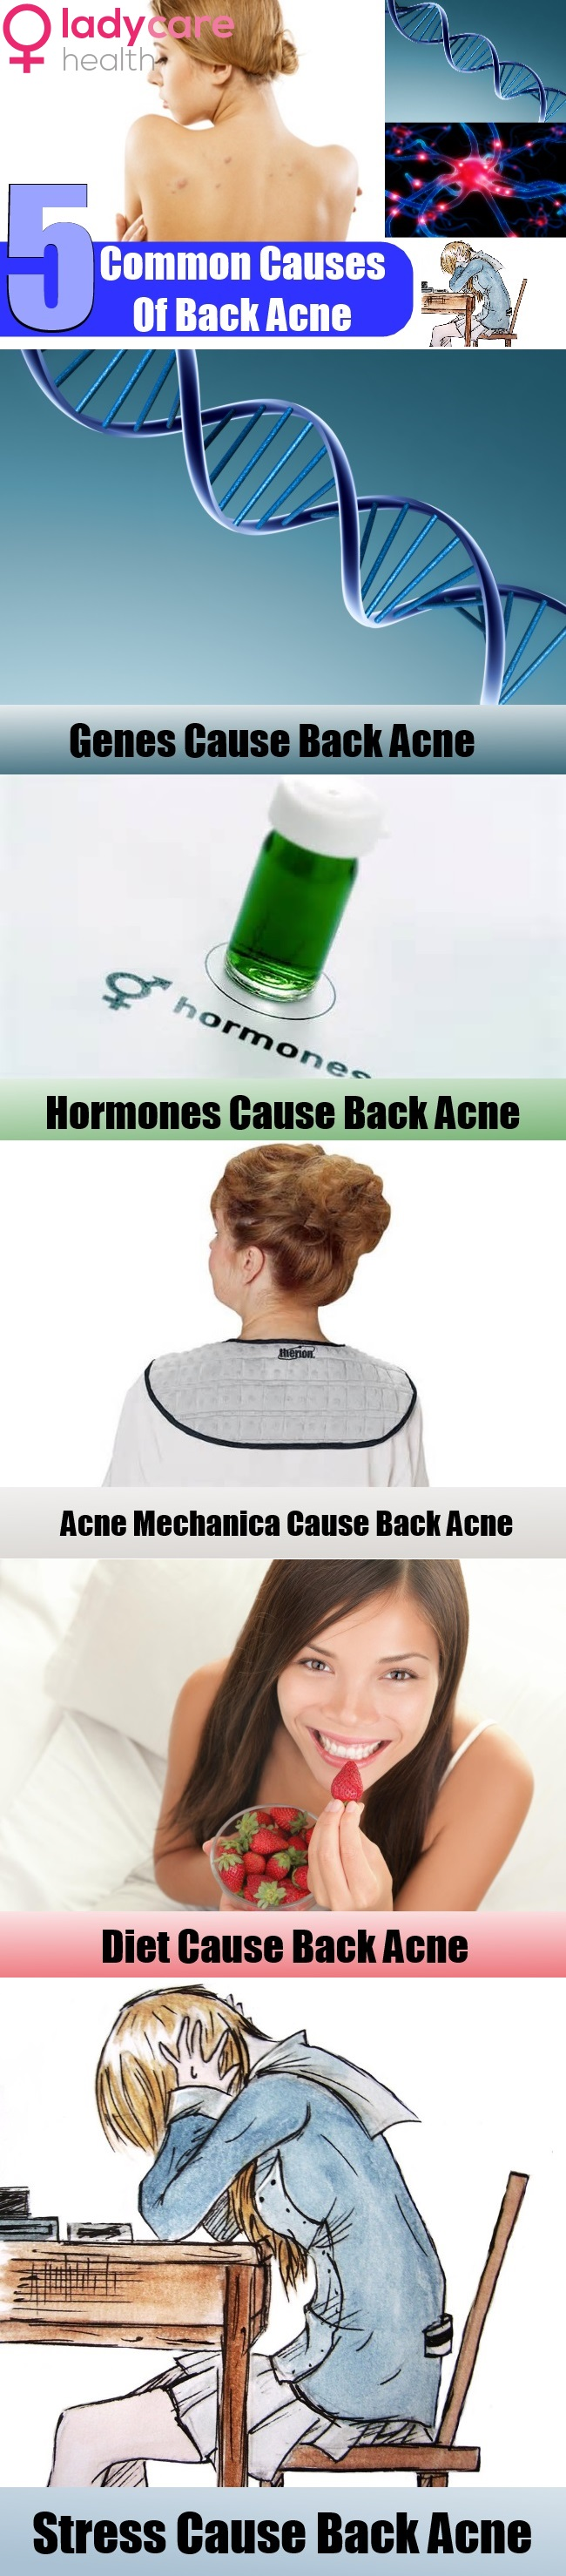 5 Common Causes Of Back Acne